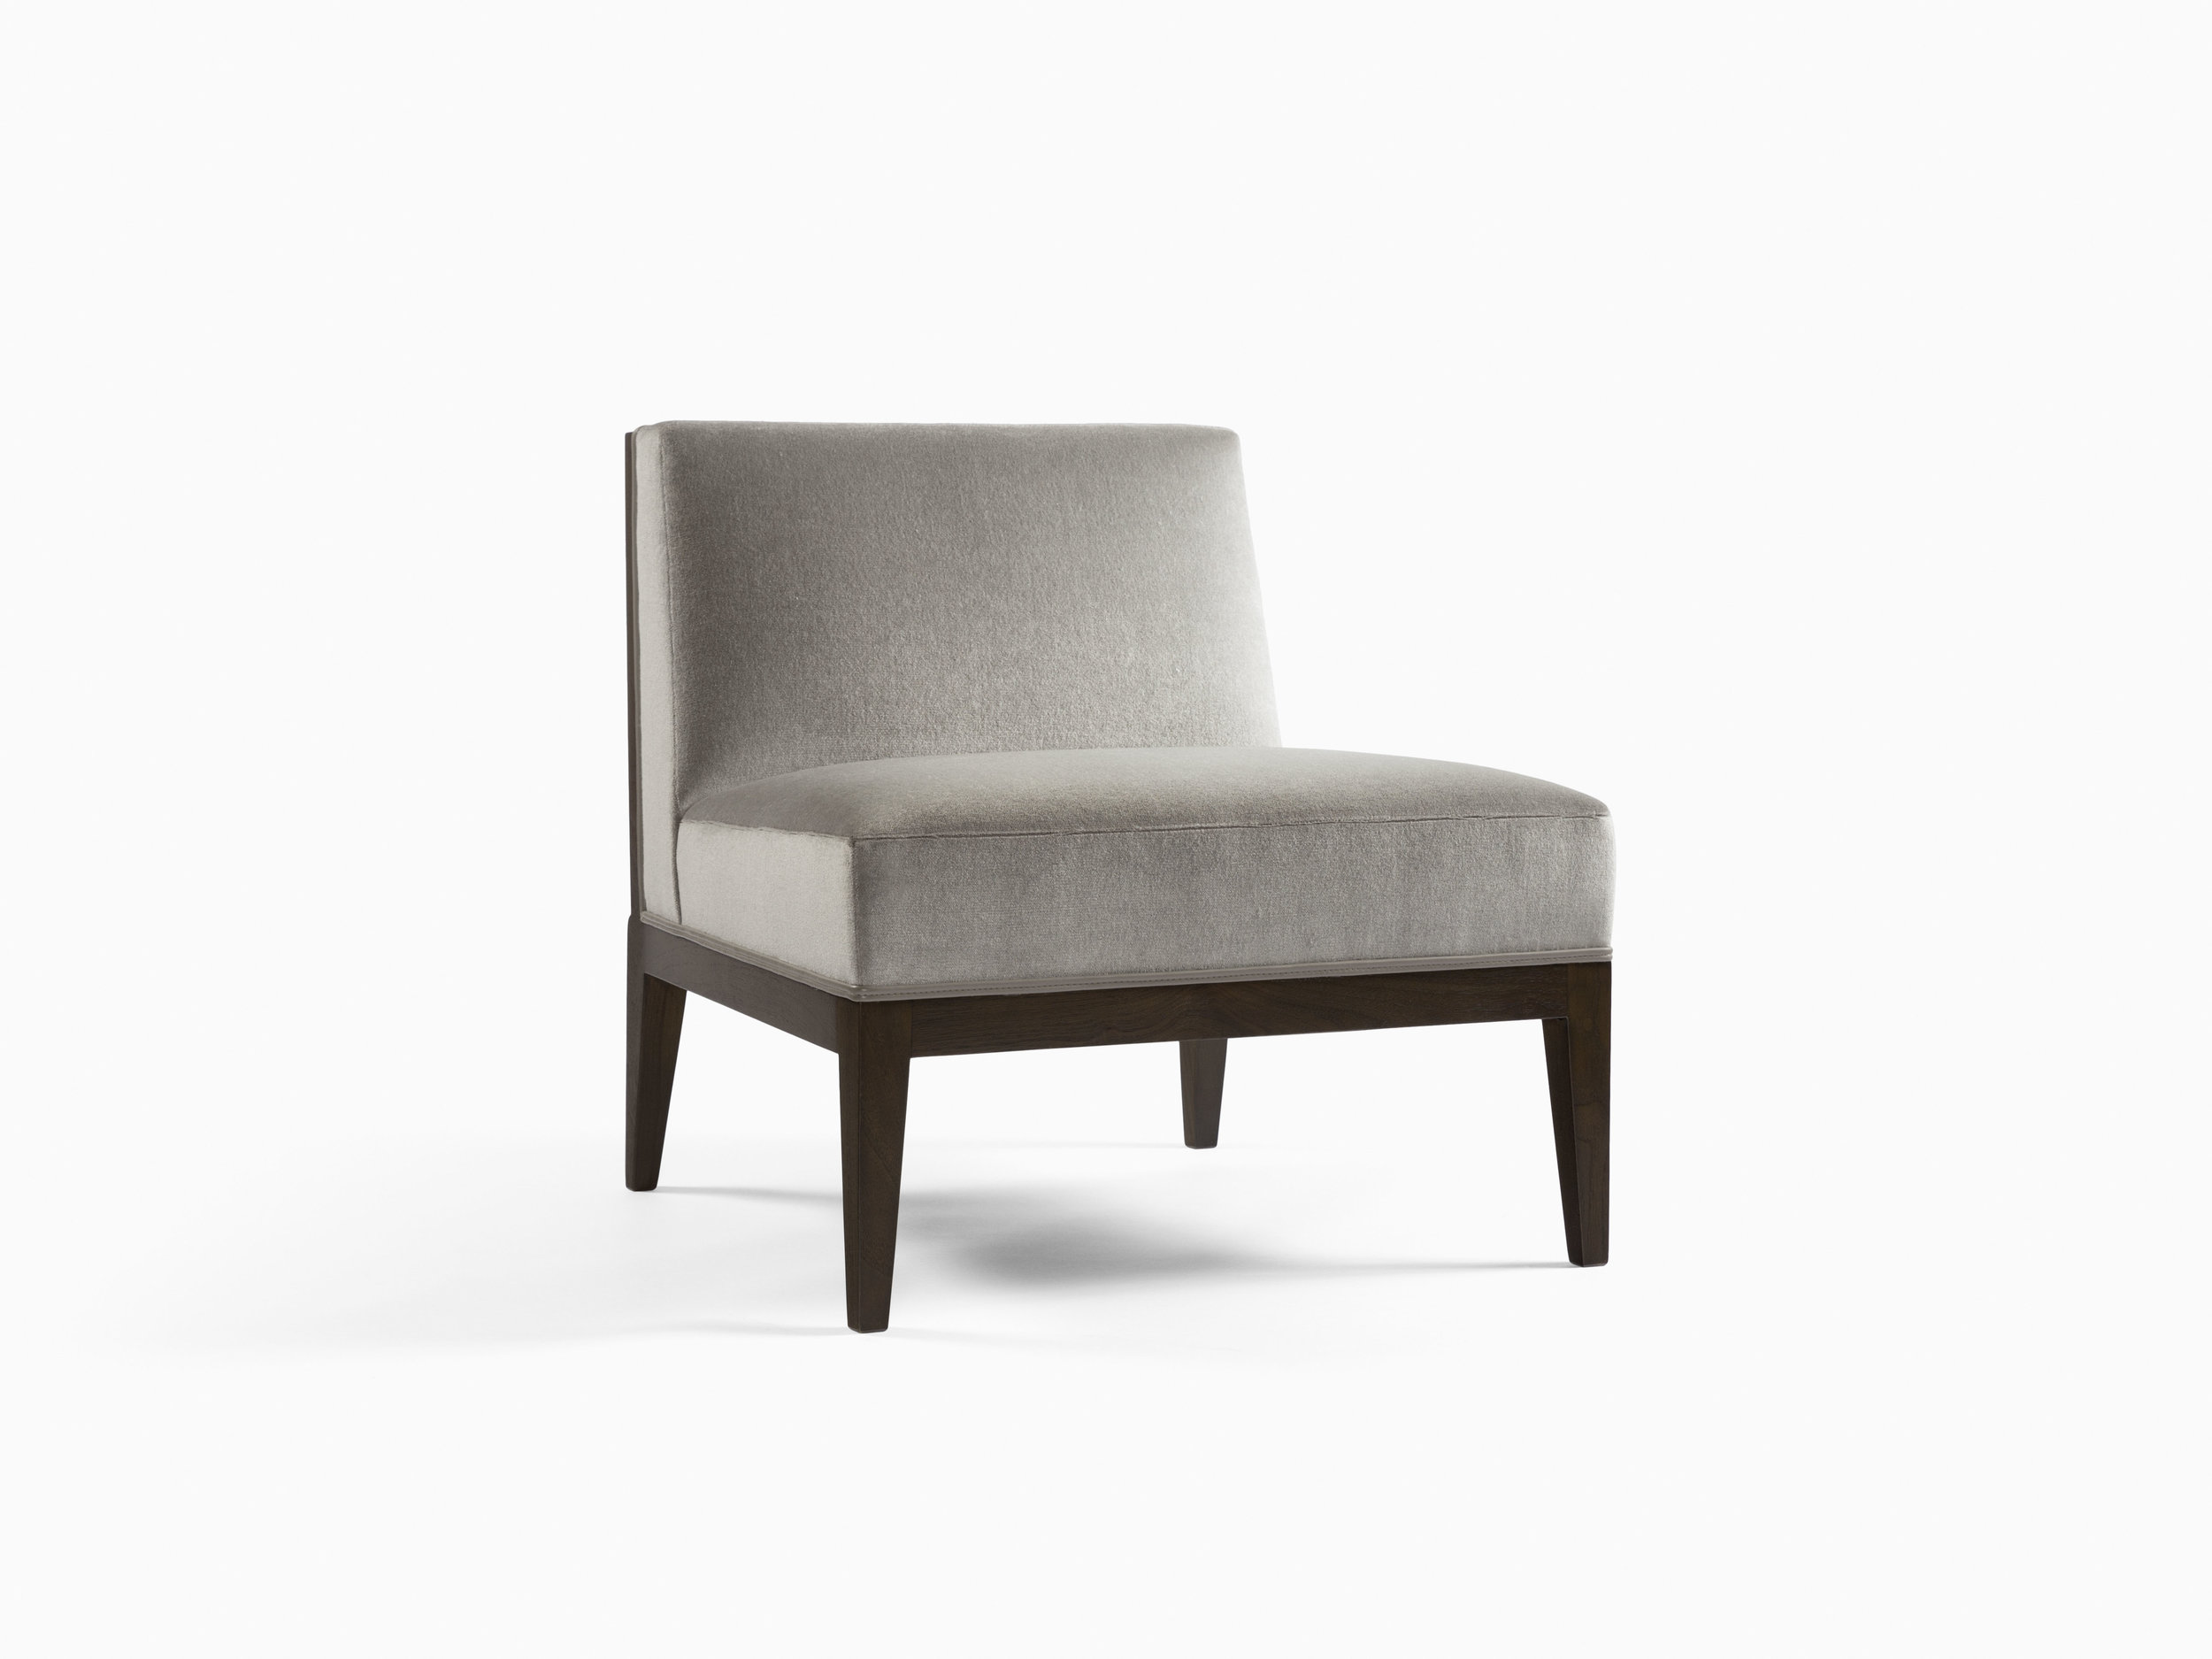 CMS Daybreak Lounge Chair 2017 (2).jpg